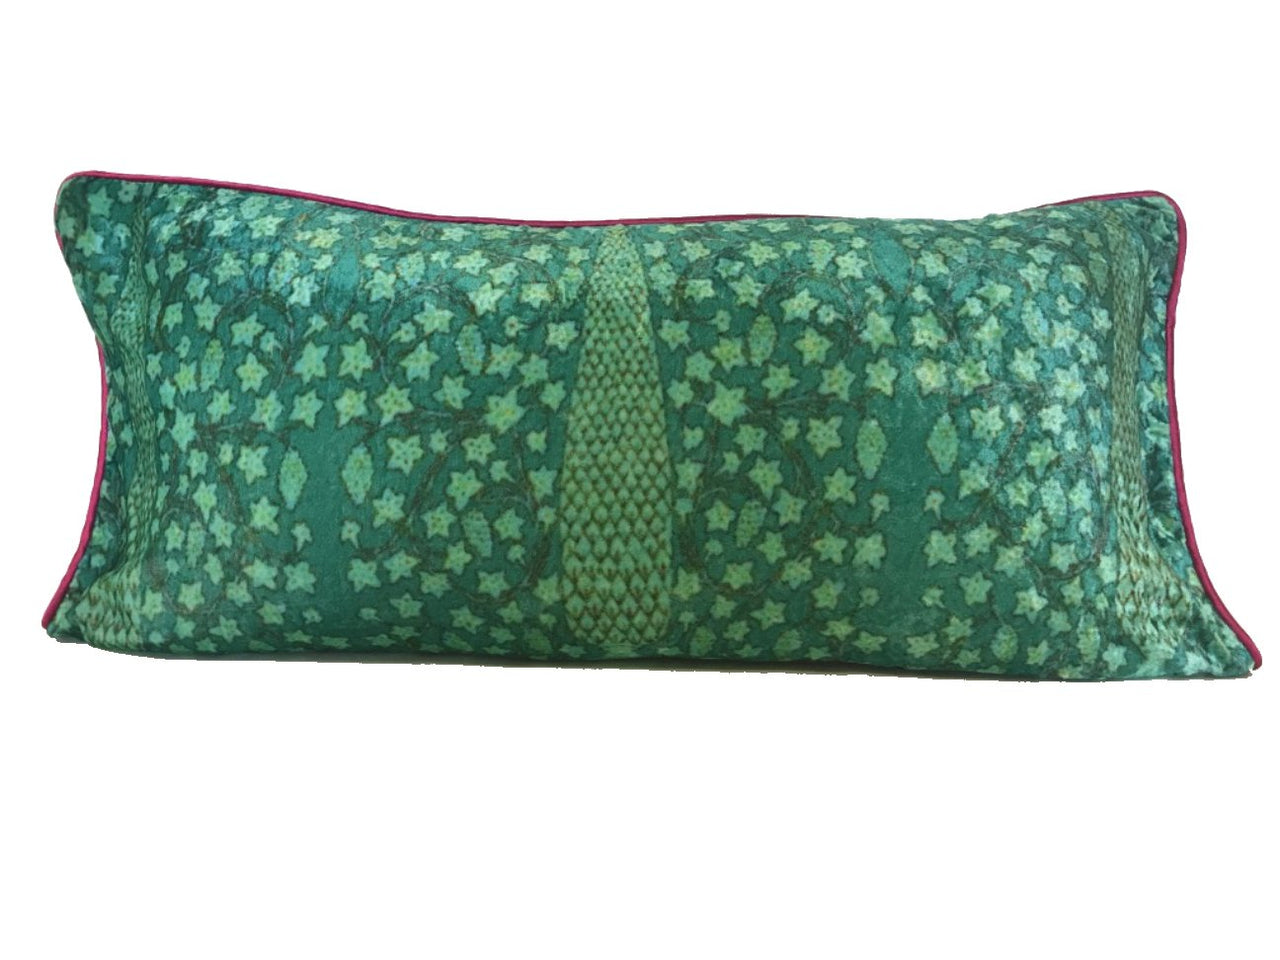 Velvet Cushion 14x28 Green Cypress on turquoise background - Maison Fusion